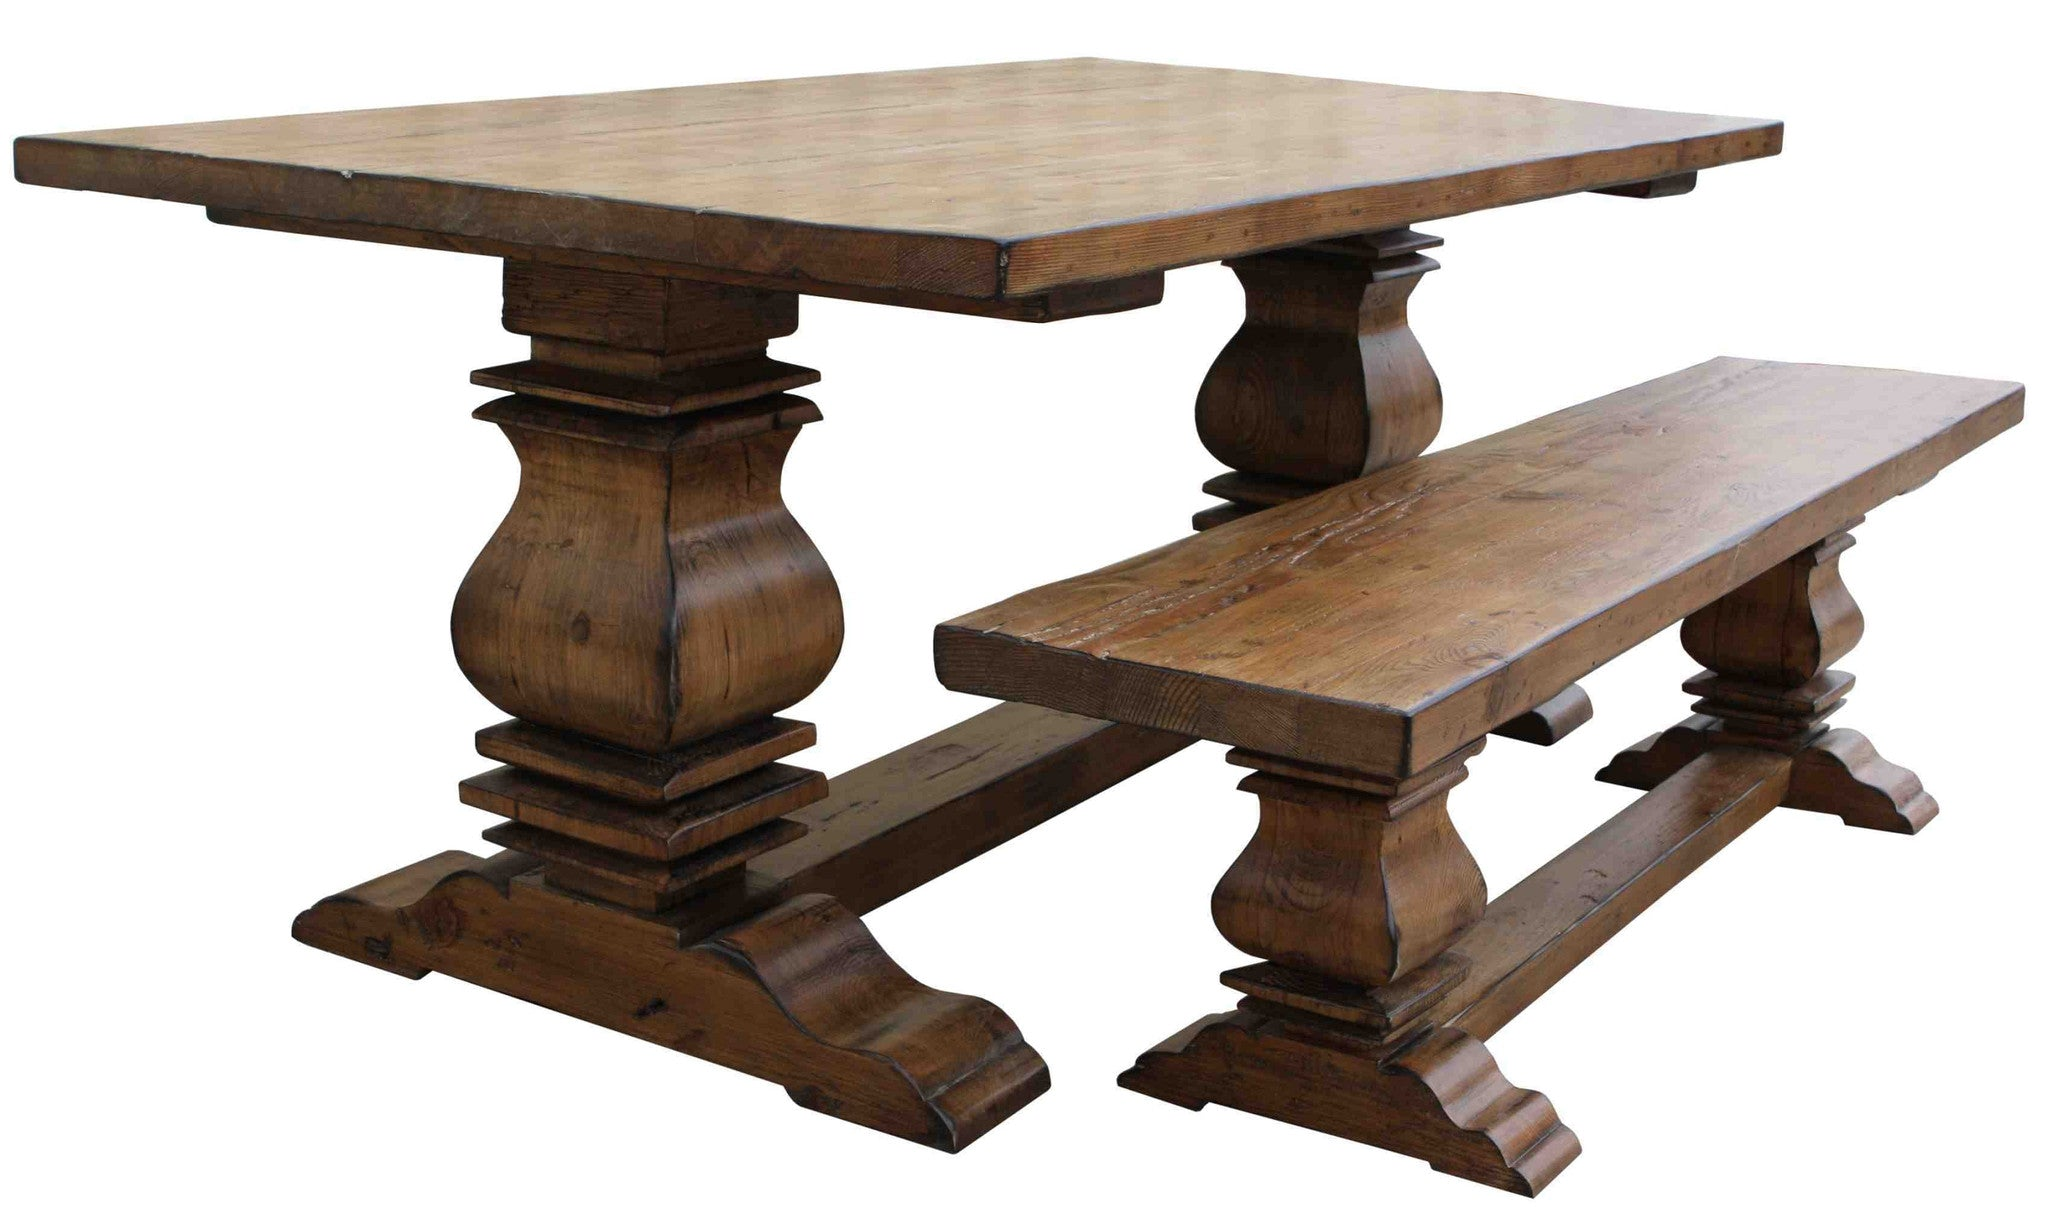 dining tables mortise tenon. Black Bedroom Furniture Sets. Home Design Ideas